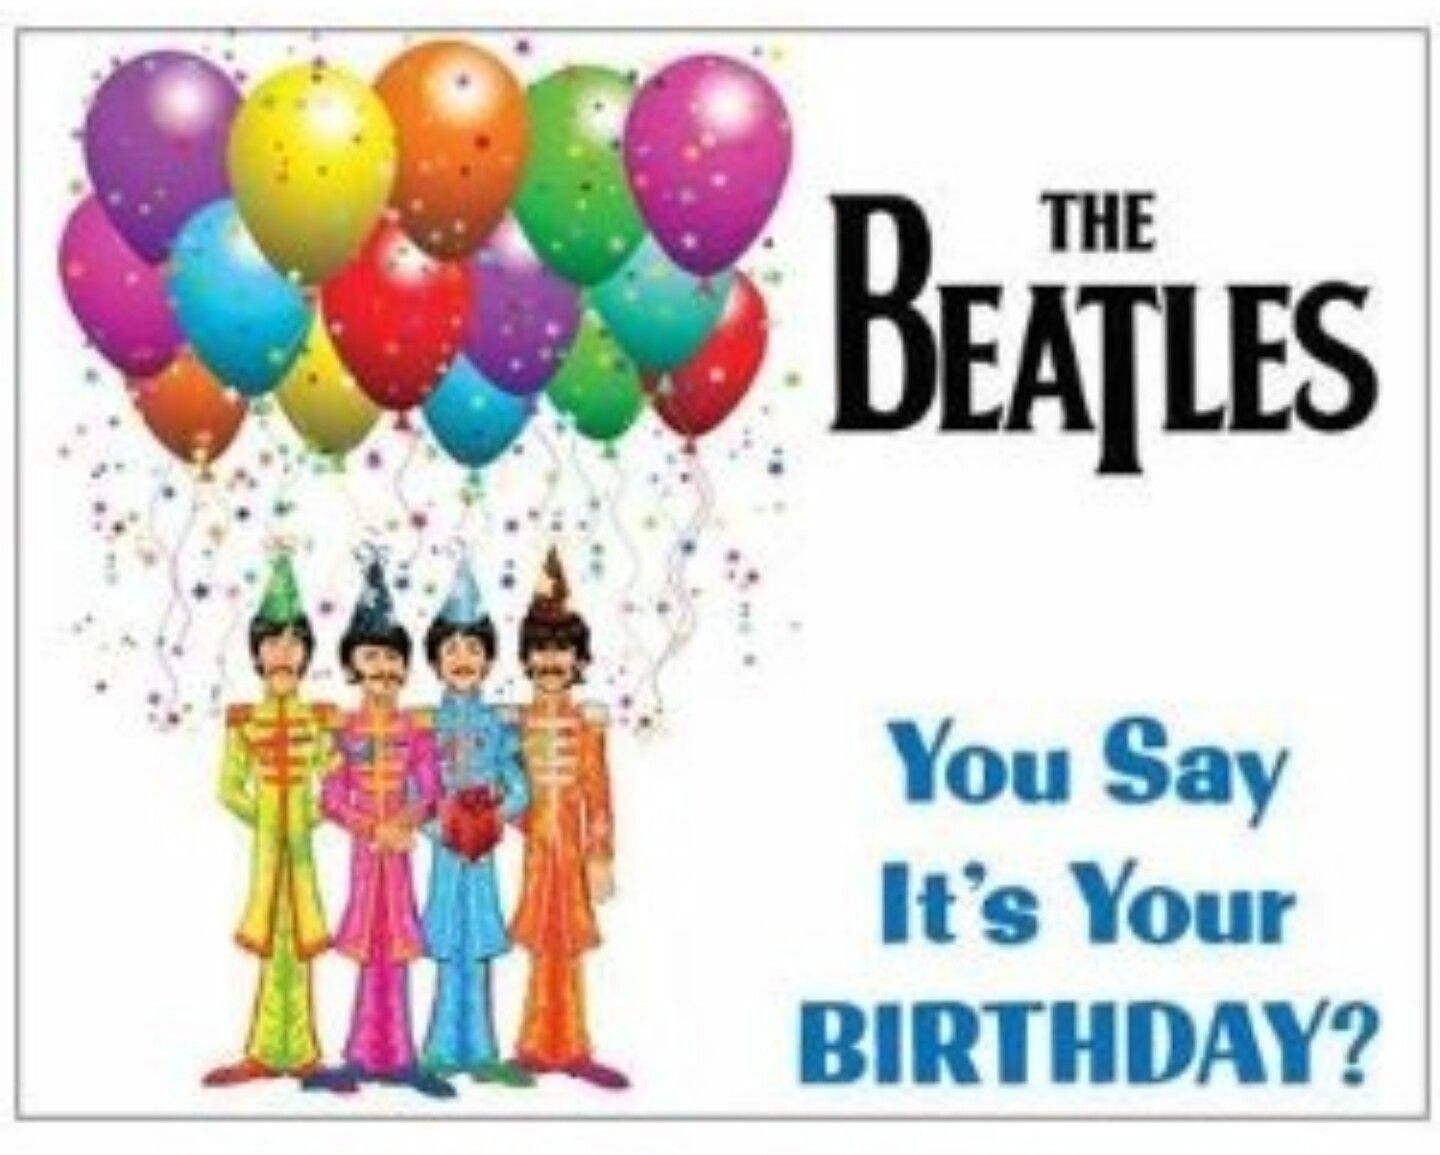 Pin by toni scavo on for greg pinterest beatles happy happy birthday the beatles bookmarktalkfo Choice Image